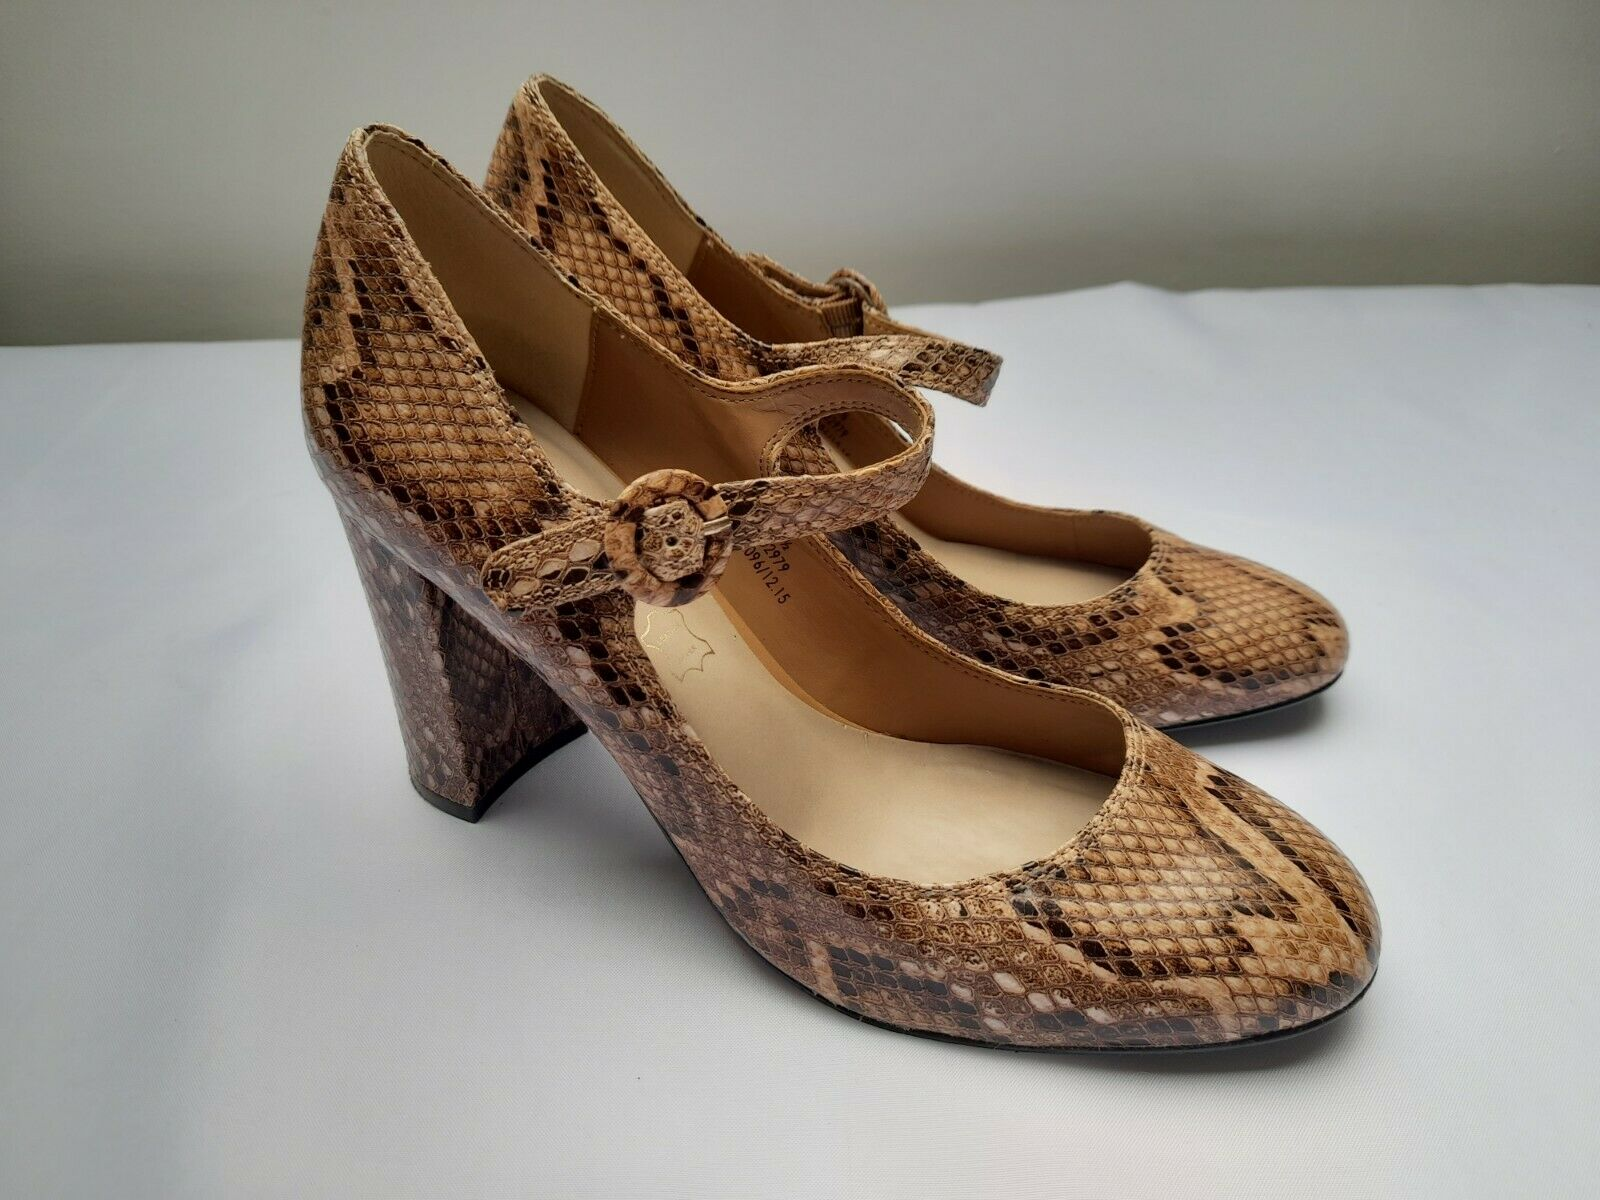 M&S AUTOGRAPH shoes size 6.5 leather snakeskin mary jane high block heel